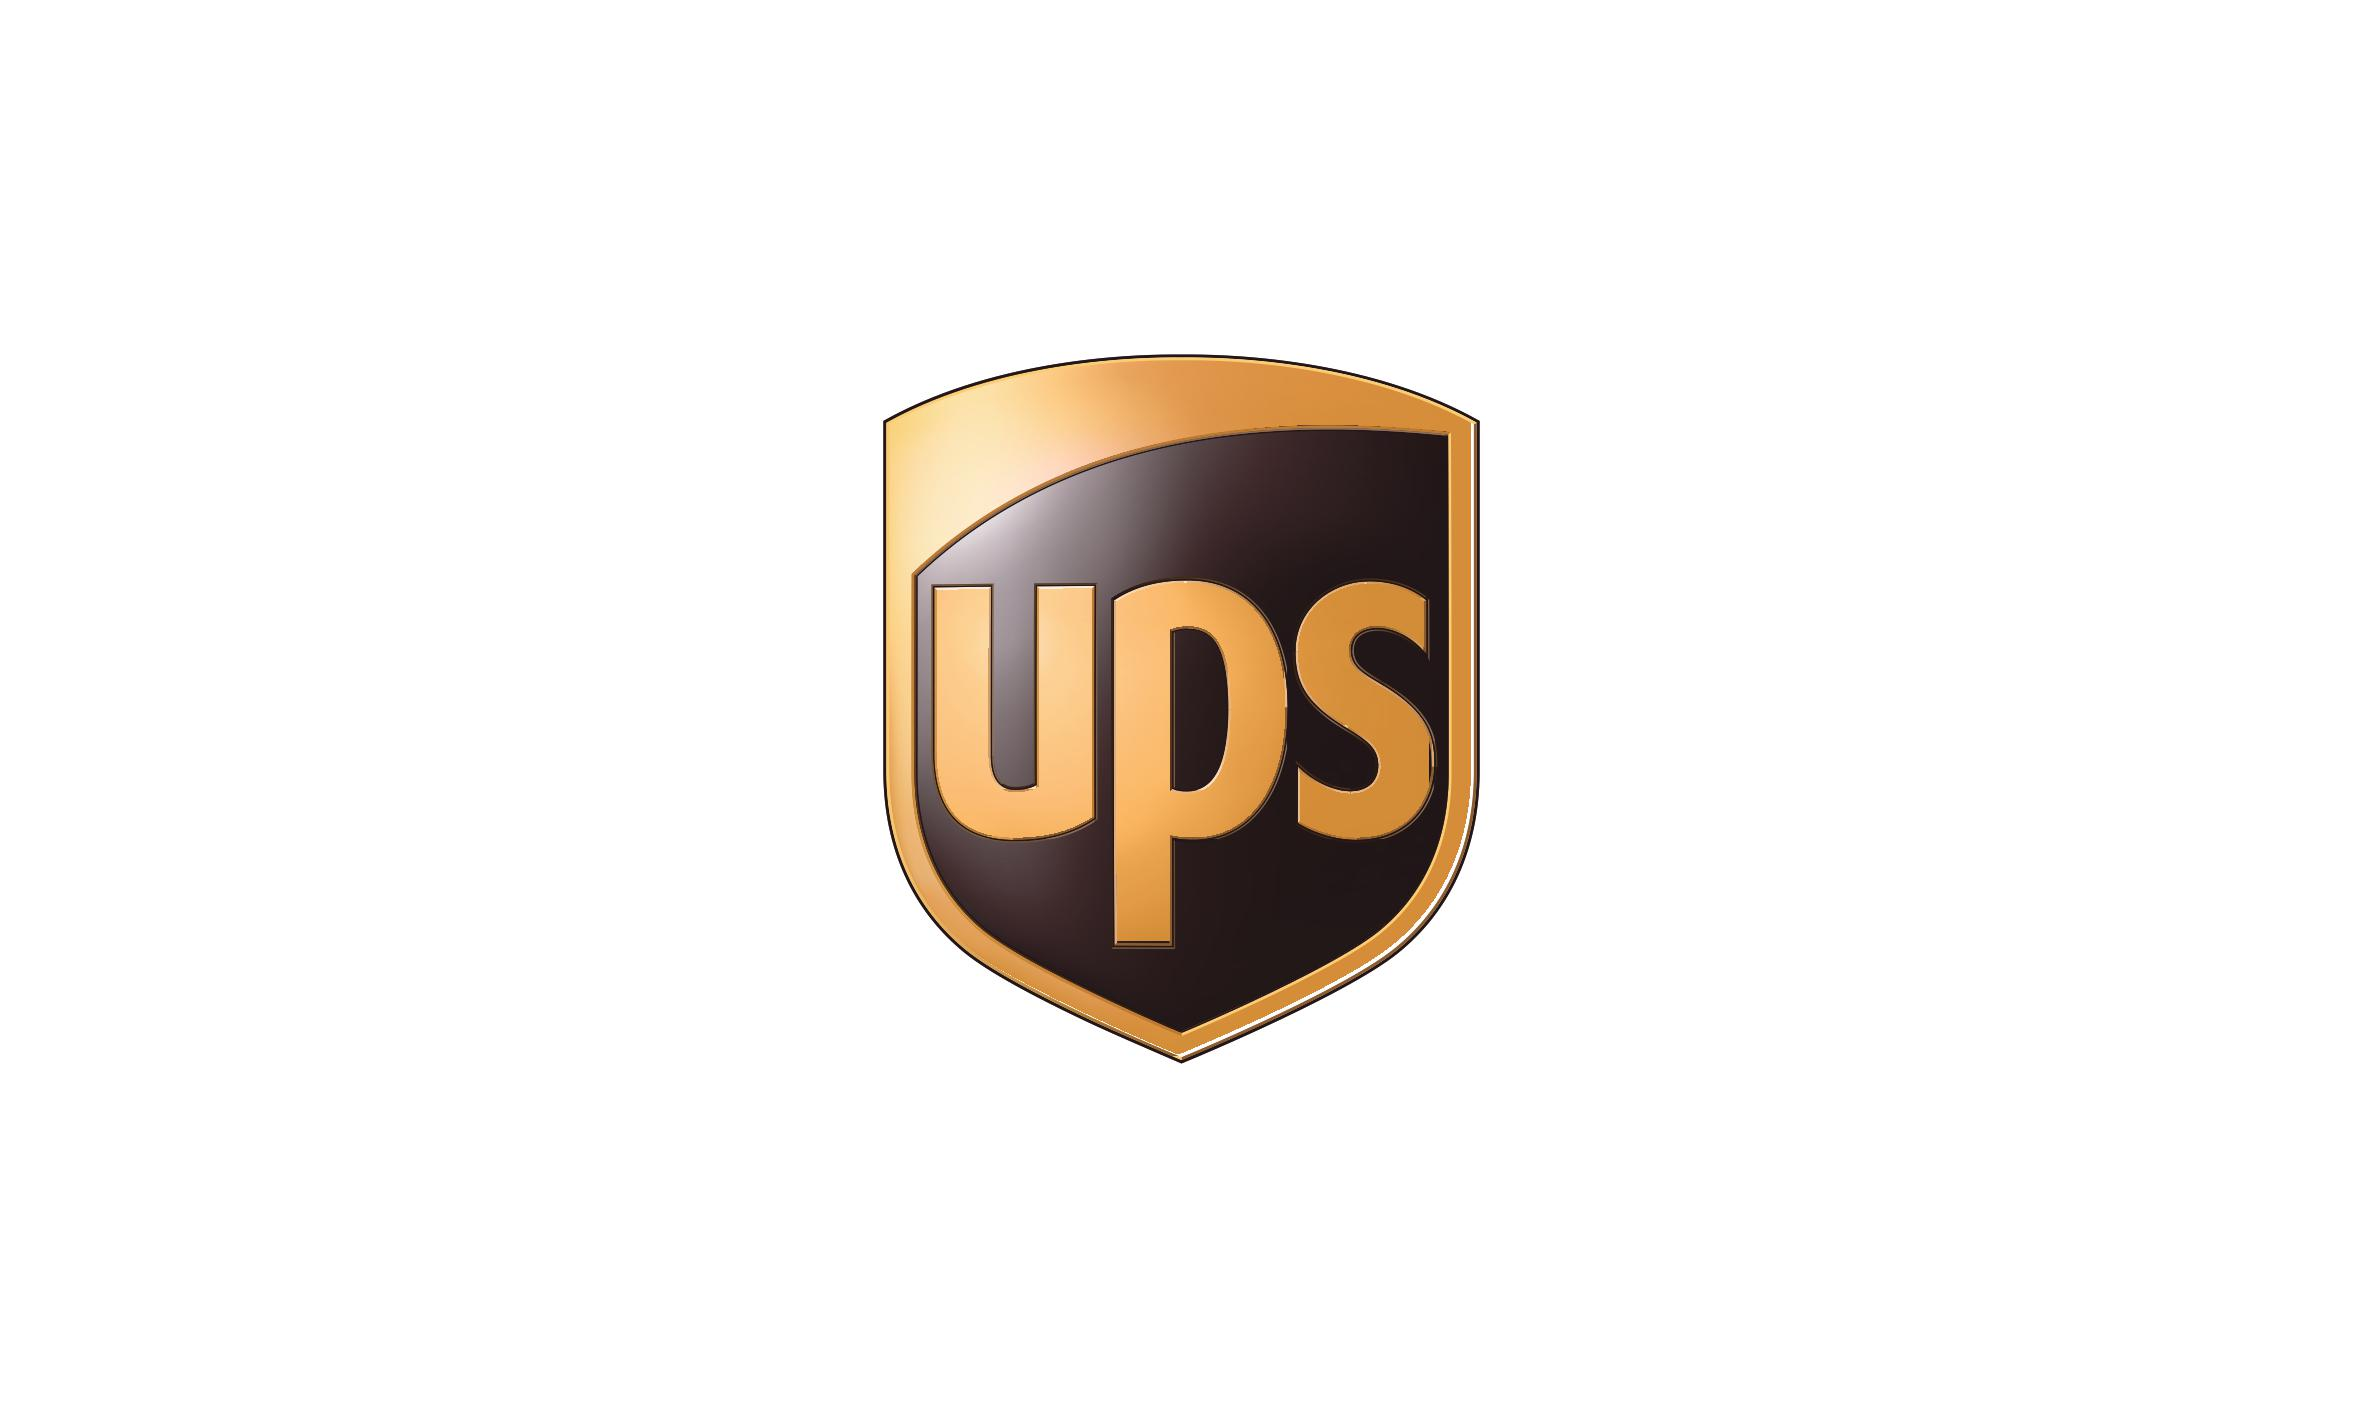 ups courier company